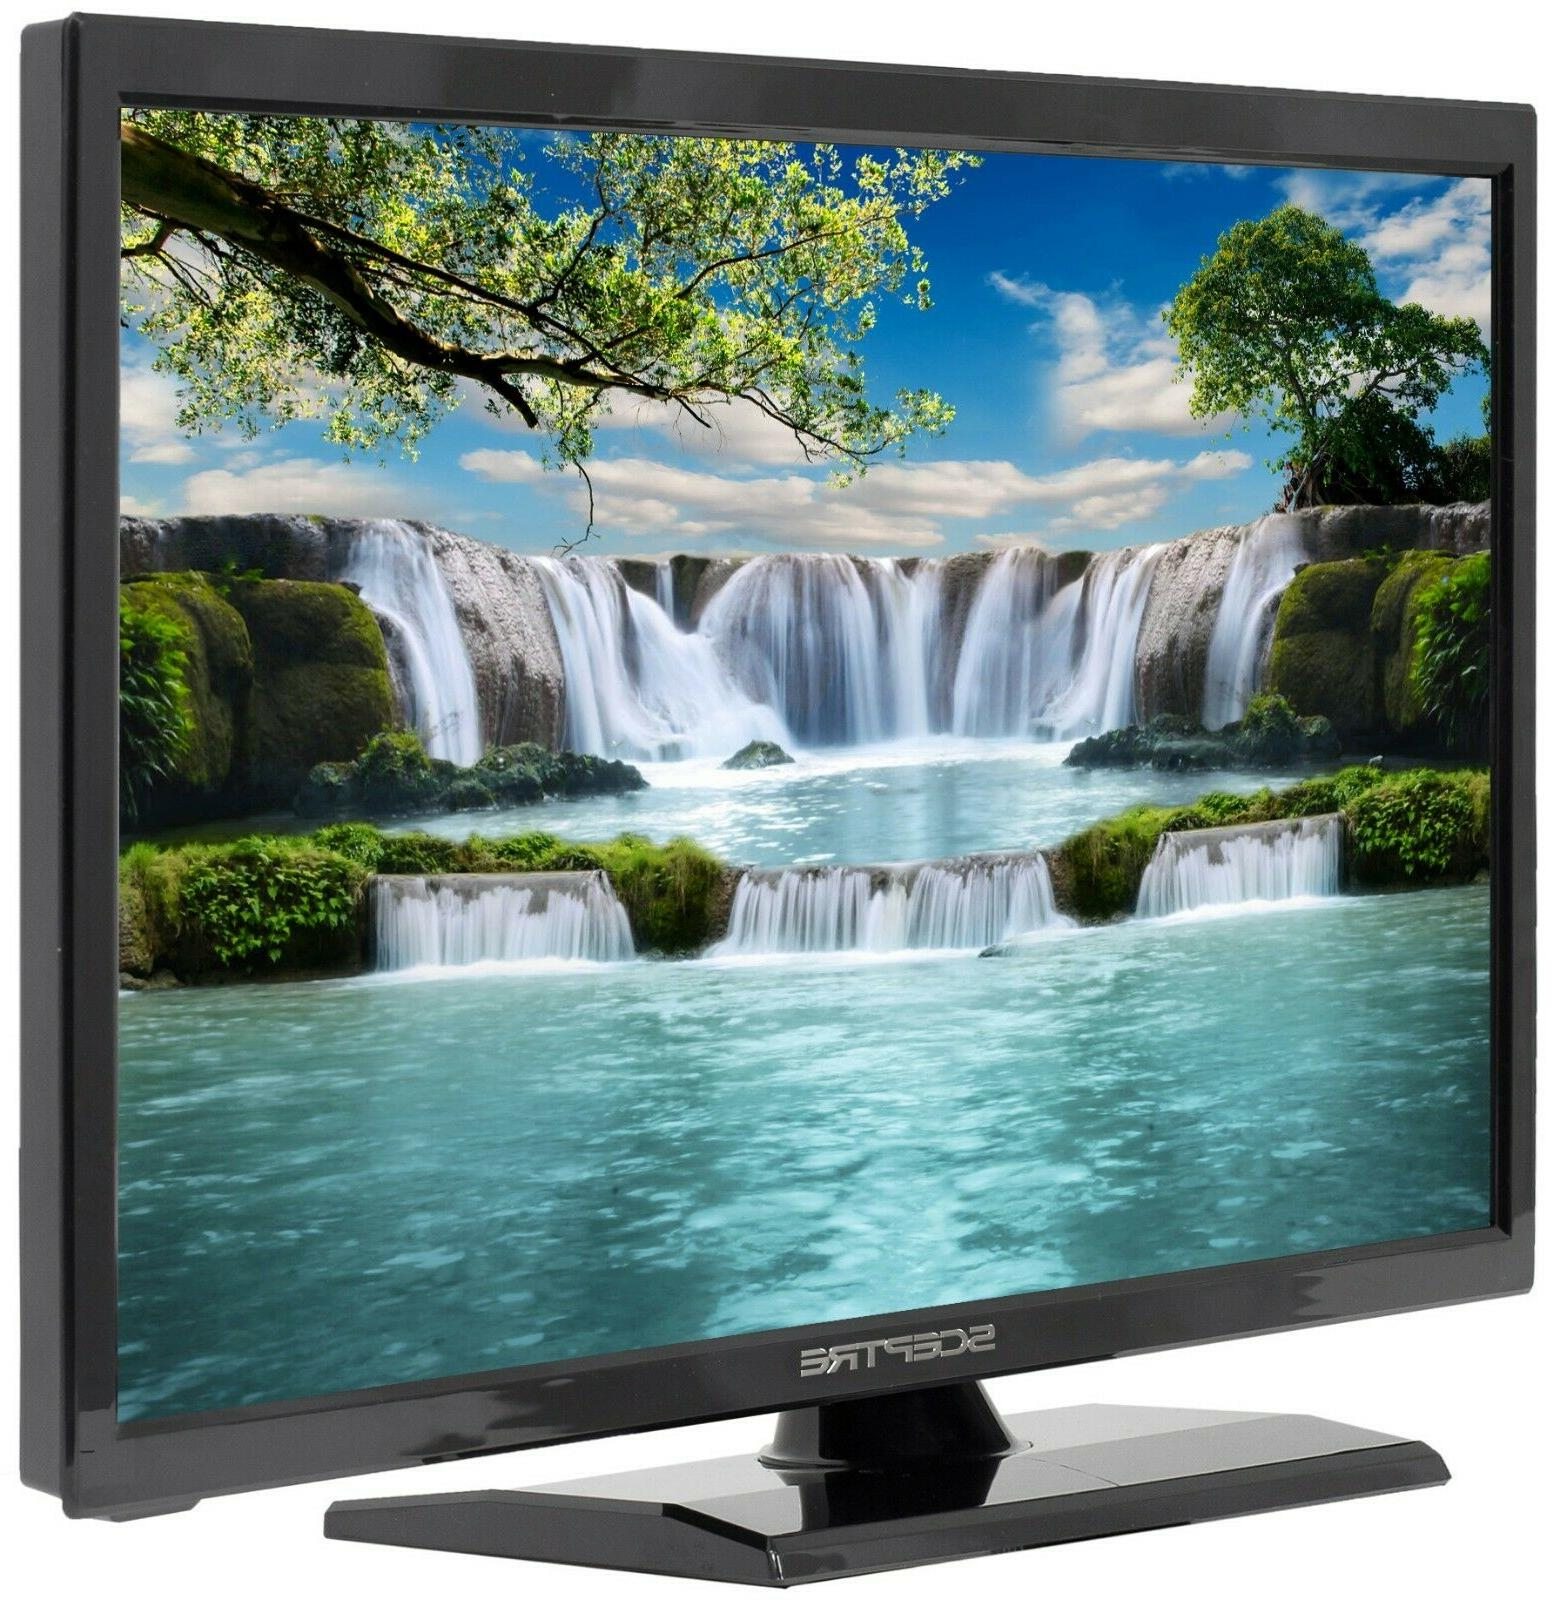 HD LED TV 19 169 Stand